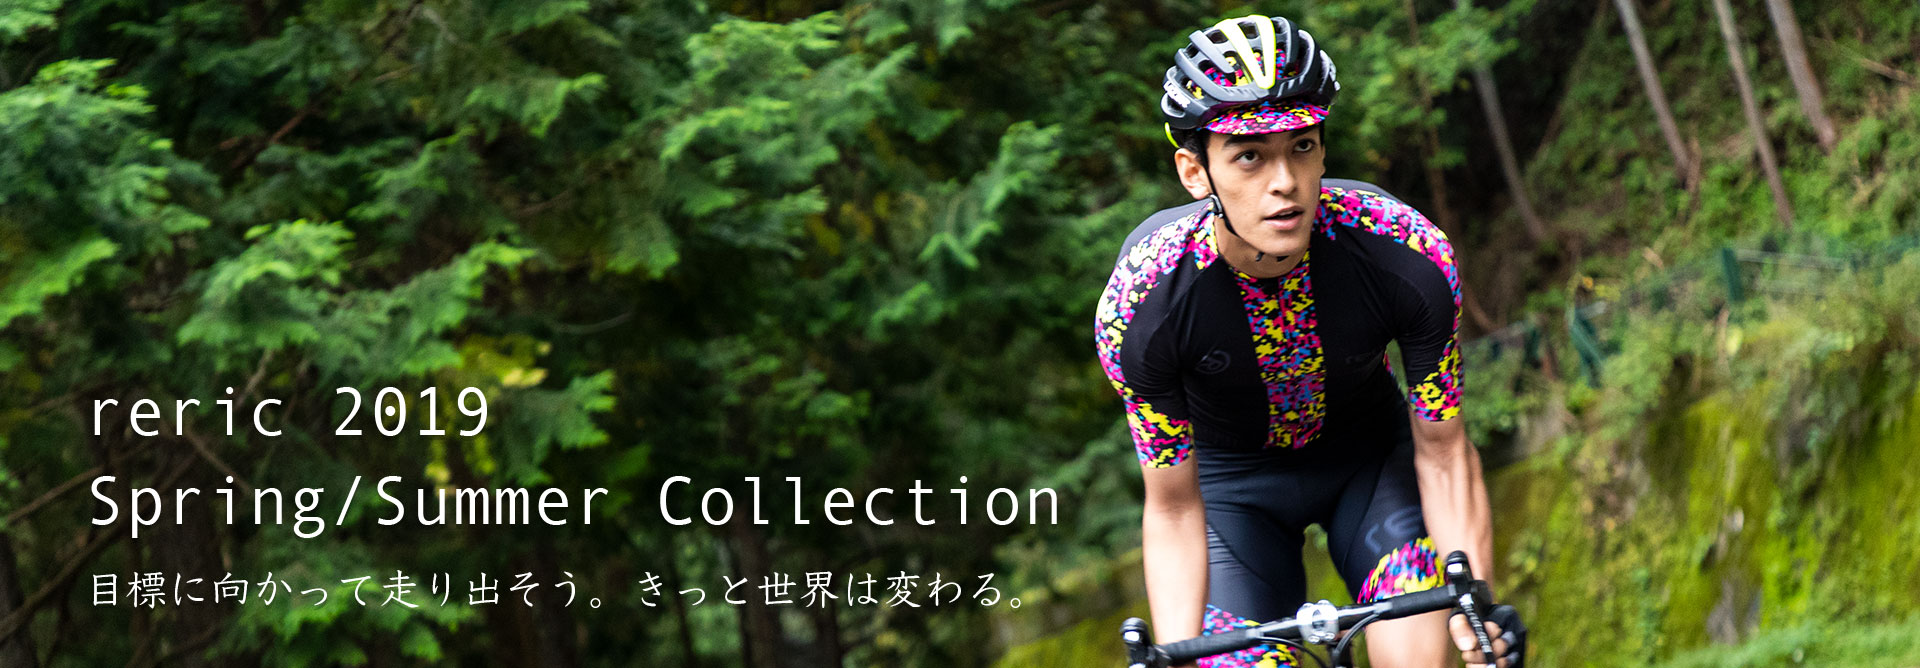 reric 2019 Spring/Summer Collection